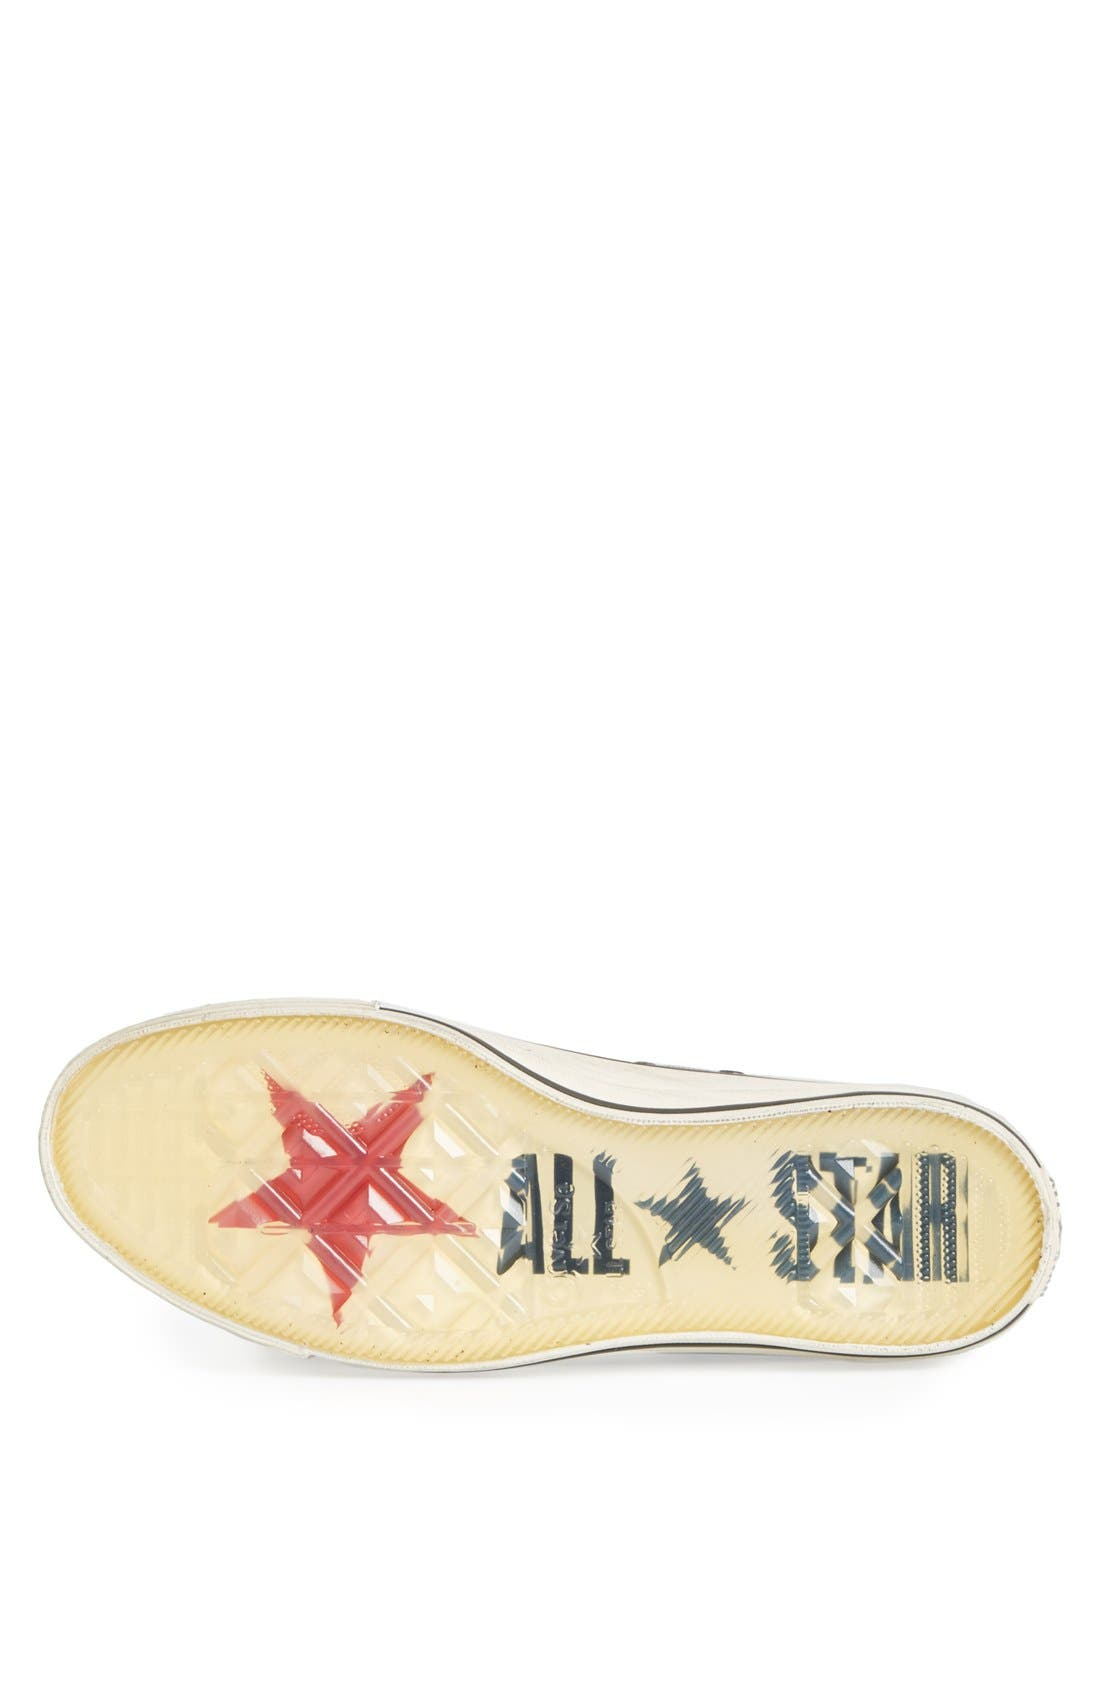 Chuck Taylor<sup>®</sup> Low Sneaker,                             Alternate thumbnail 2, color,                             020